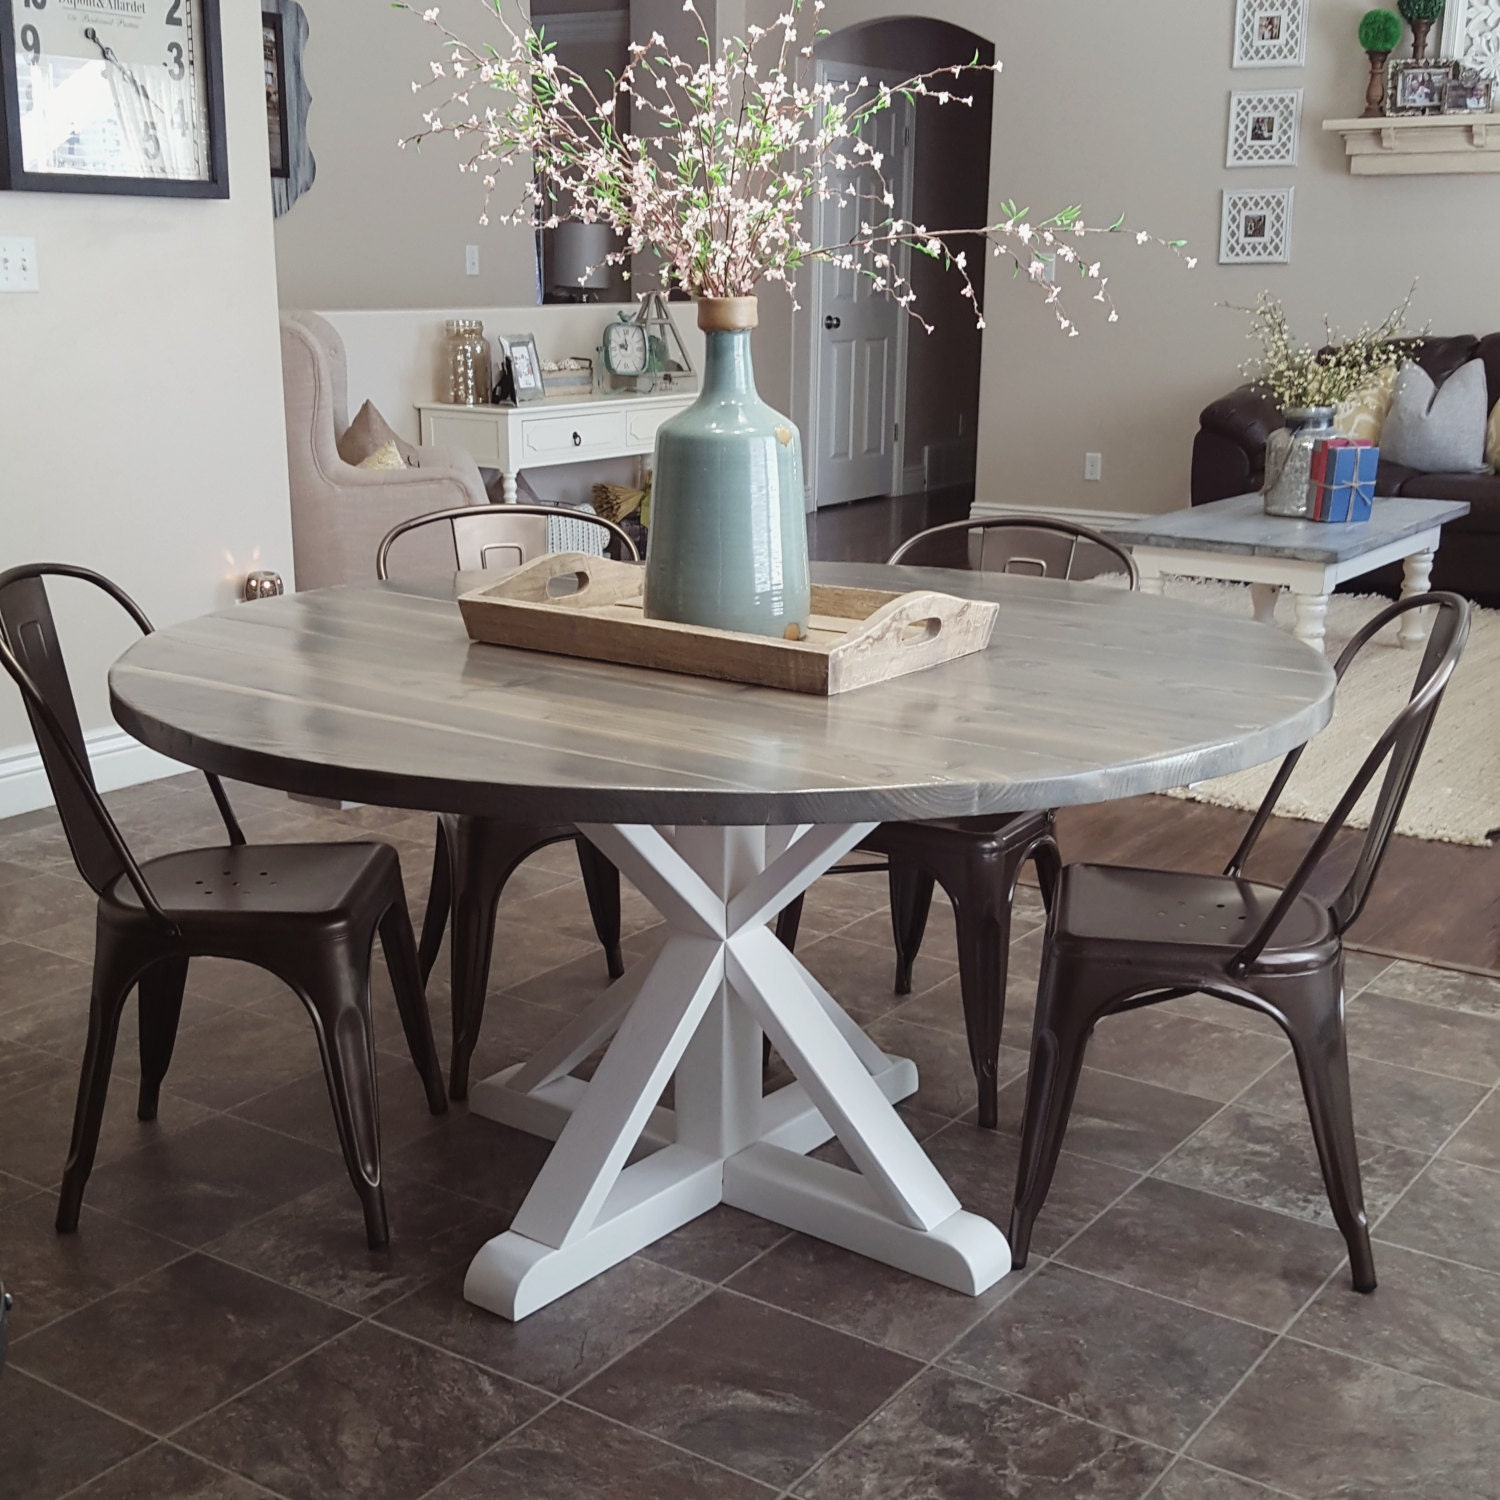 Round Kitchen Tables: Rustic Handmade Round Farmhouse / Dinning Table